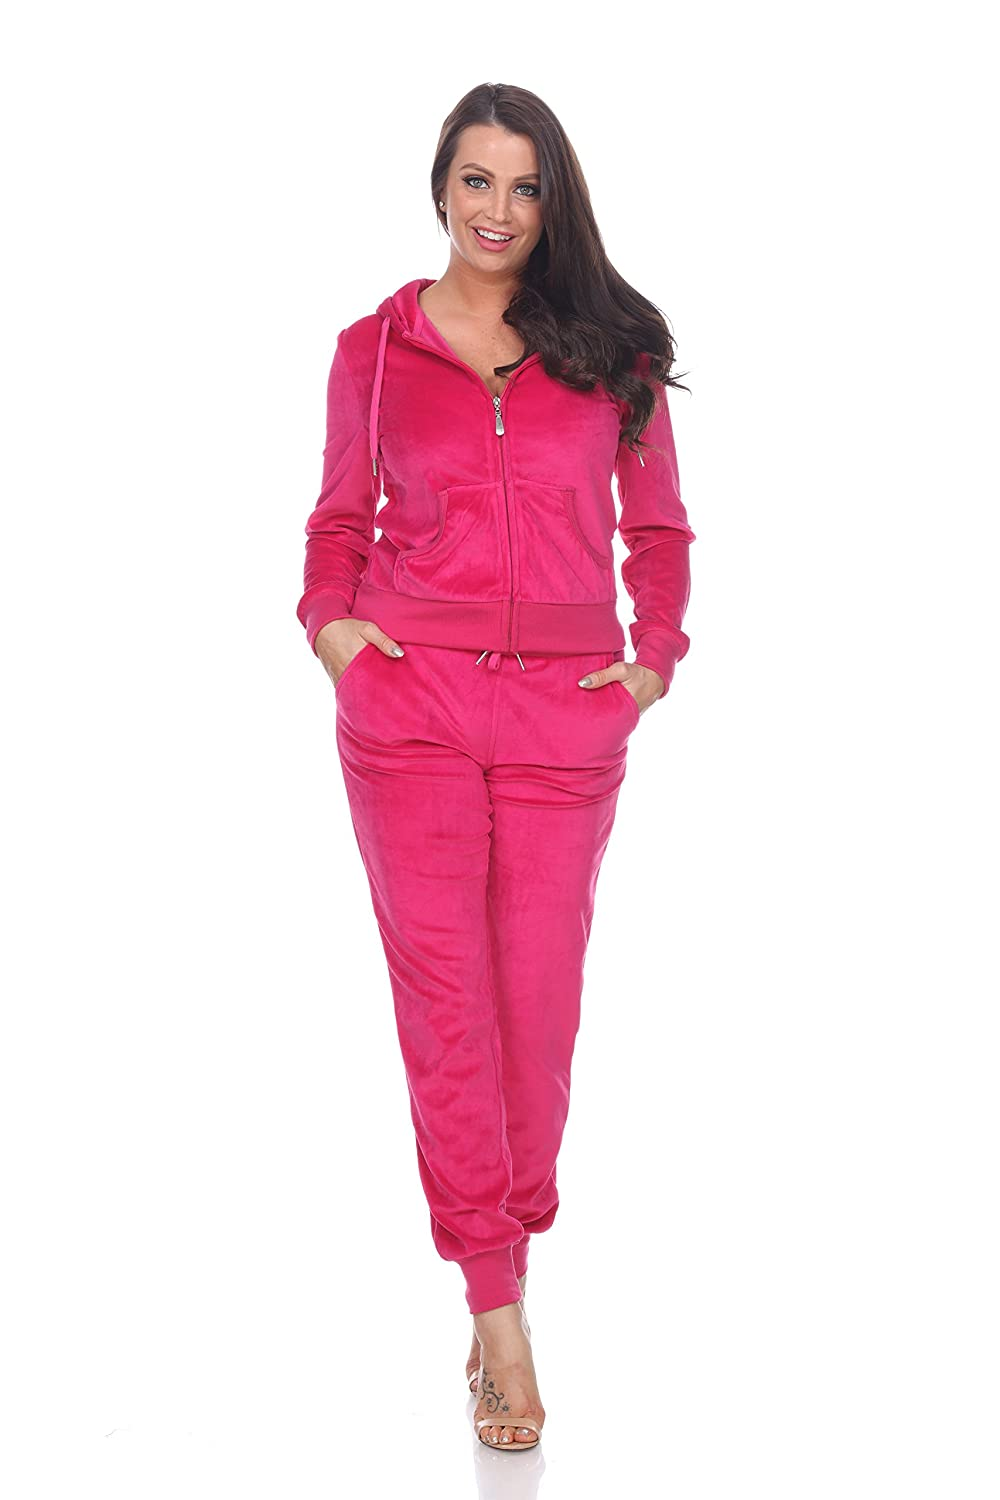 e71e3db575349b Top6: Mili Fitted Velour 2 Piece Tracksuit With Jogger Style Pants & Hoodie  Jacket. Wholesale Price:29.99